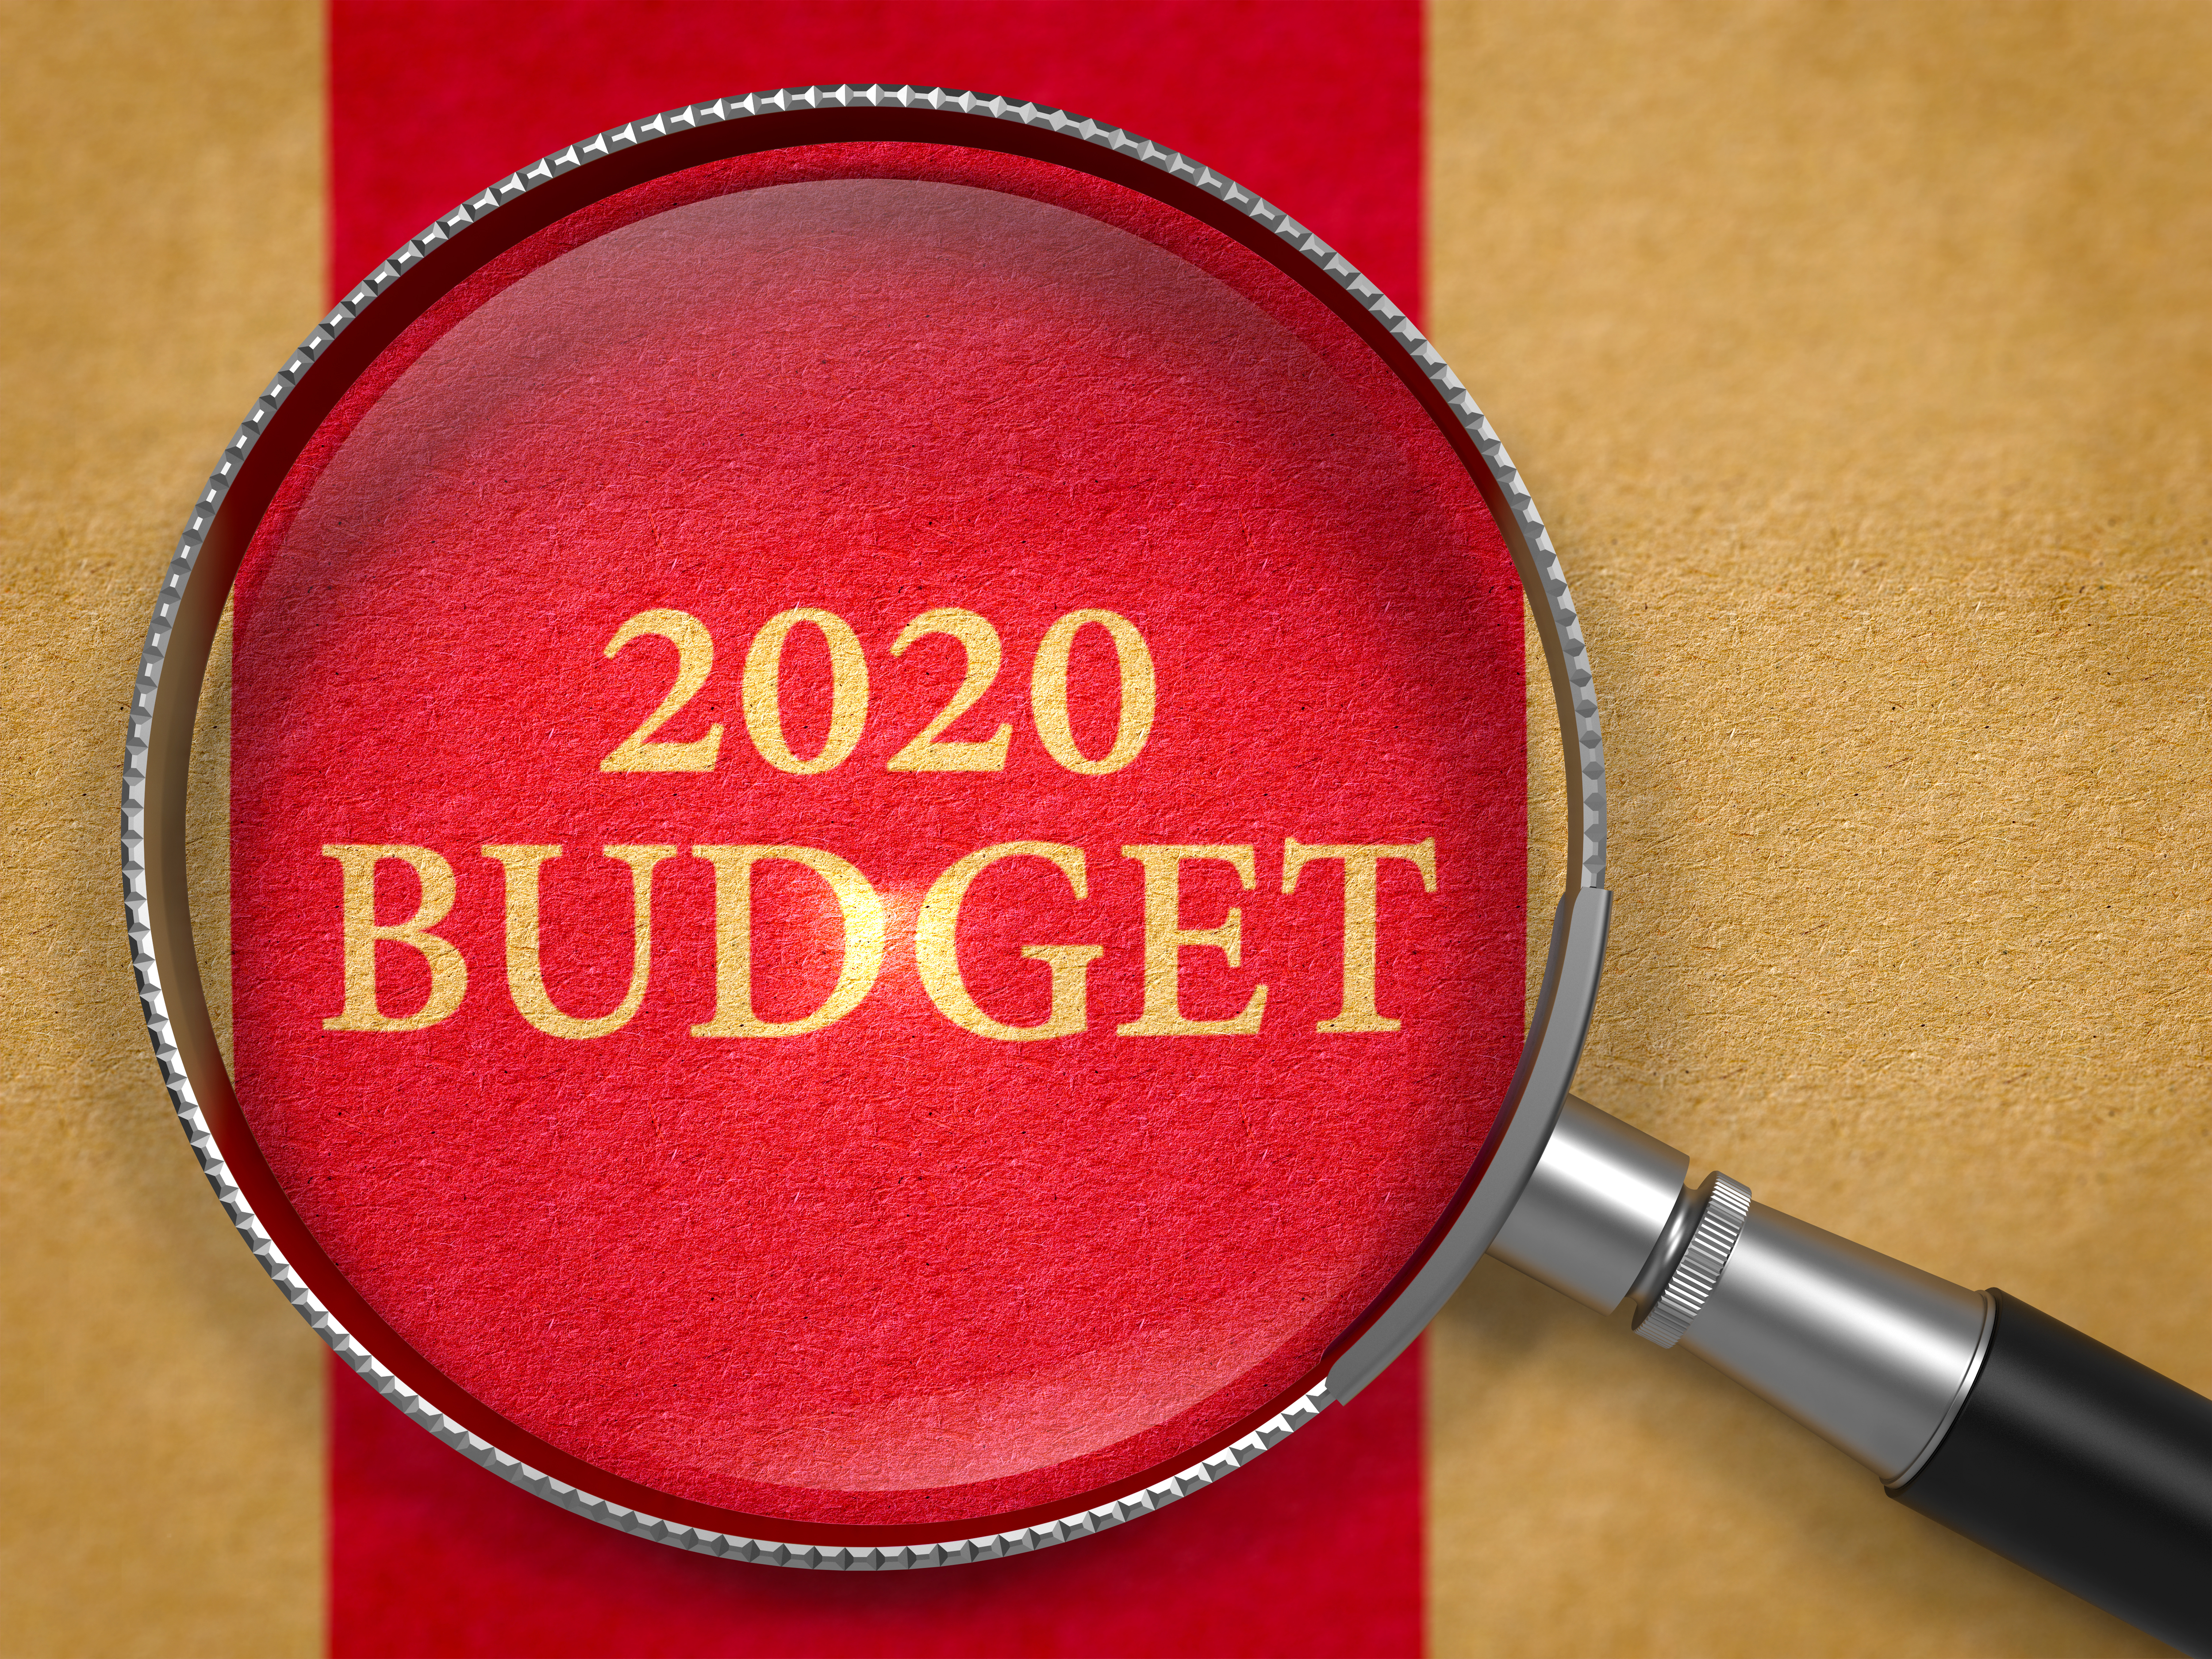 Budget 2020 Overview